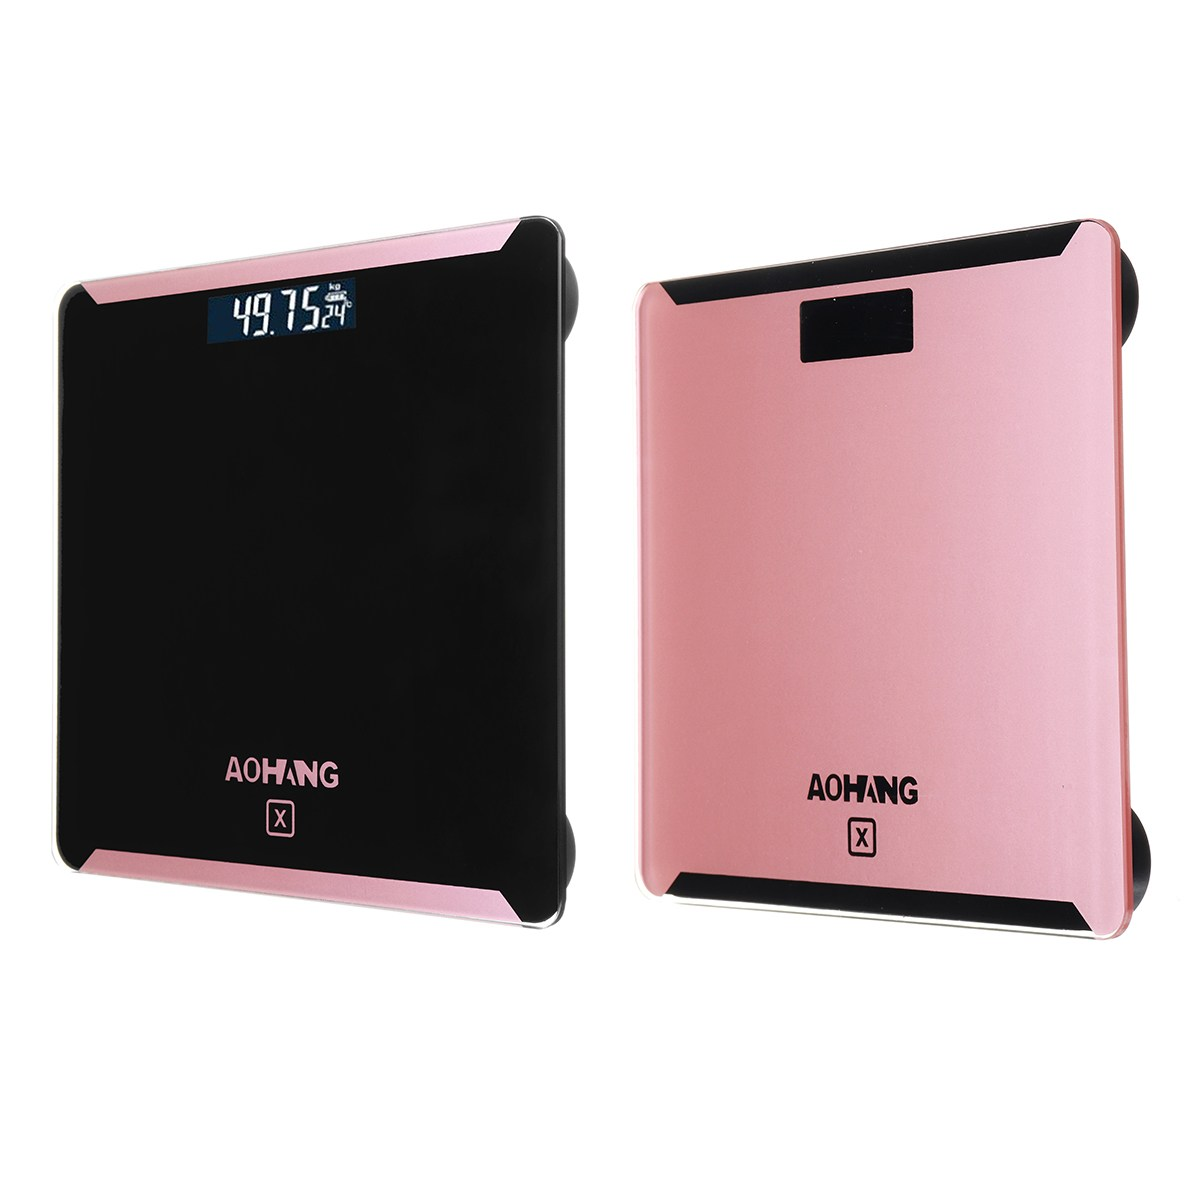 180kg/400lb Electronic LCD Digitial Bathroom Scale Body Weight Scale Fitness Fat Healty Beauty Tempered Glass Pink/Black